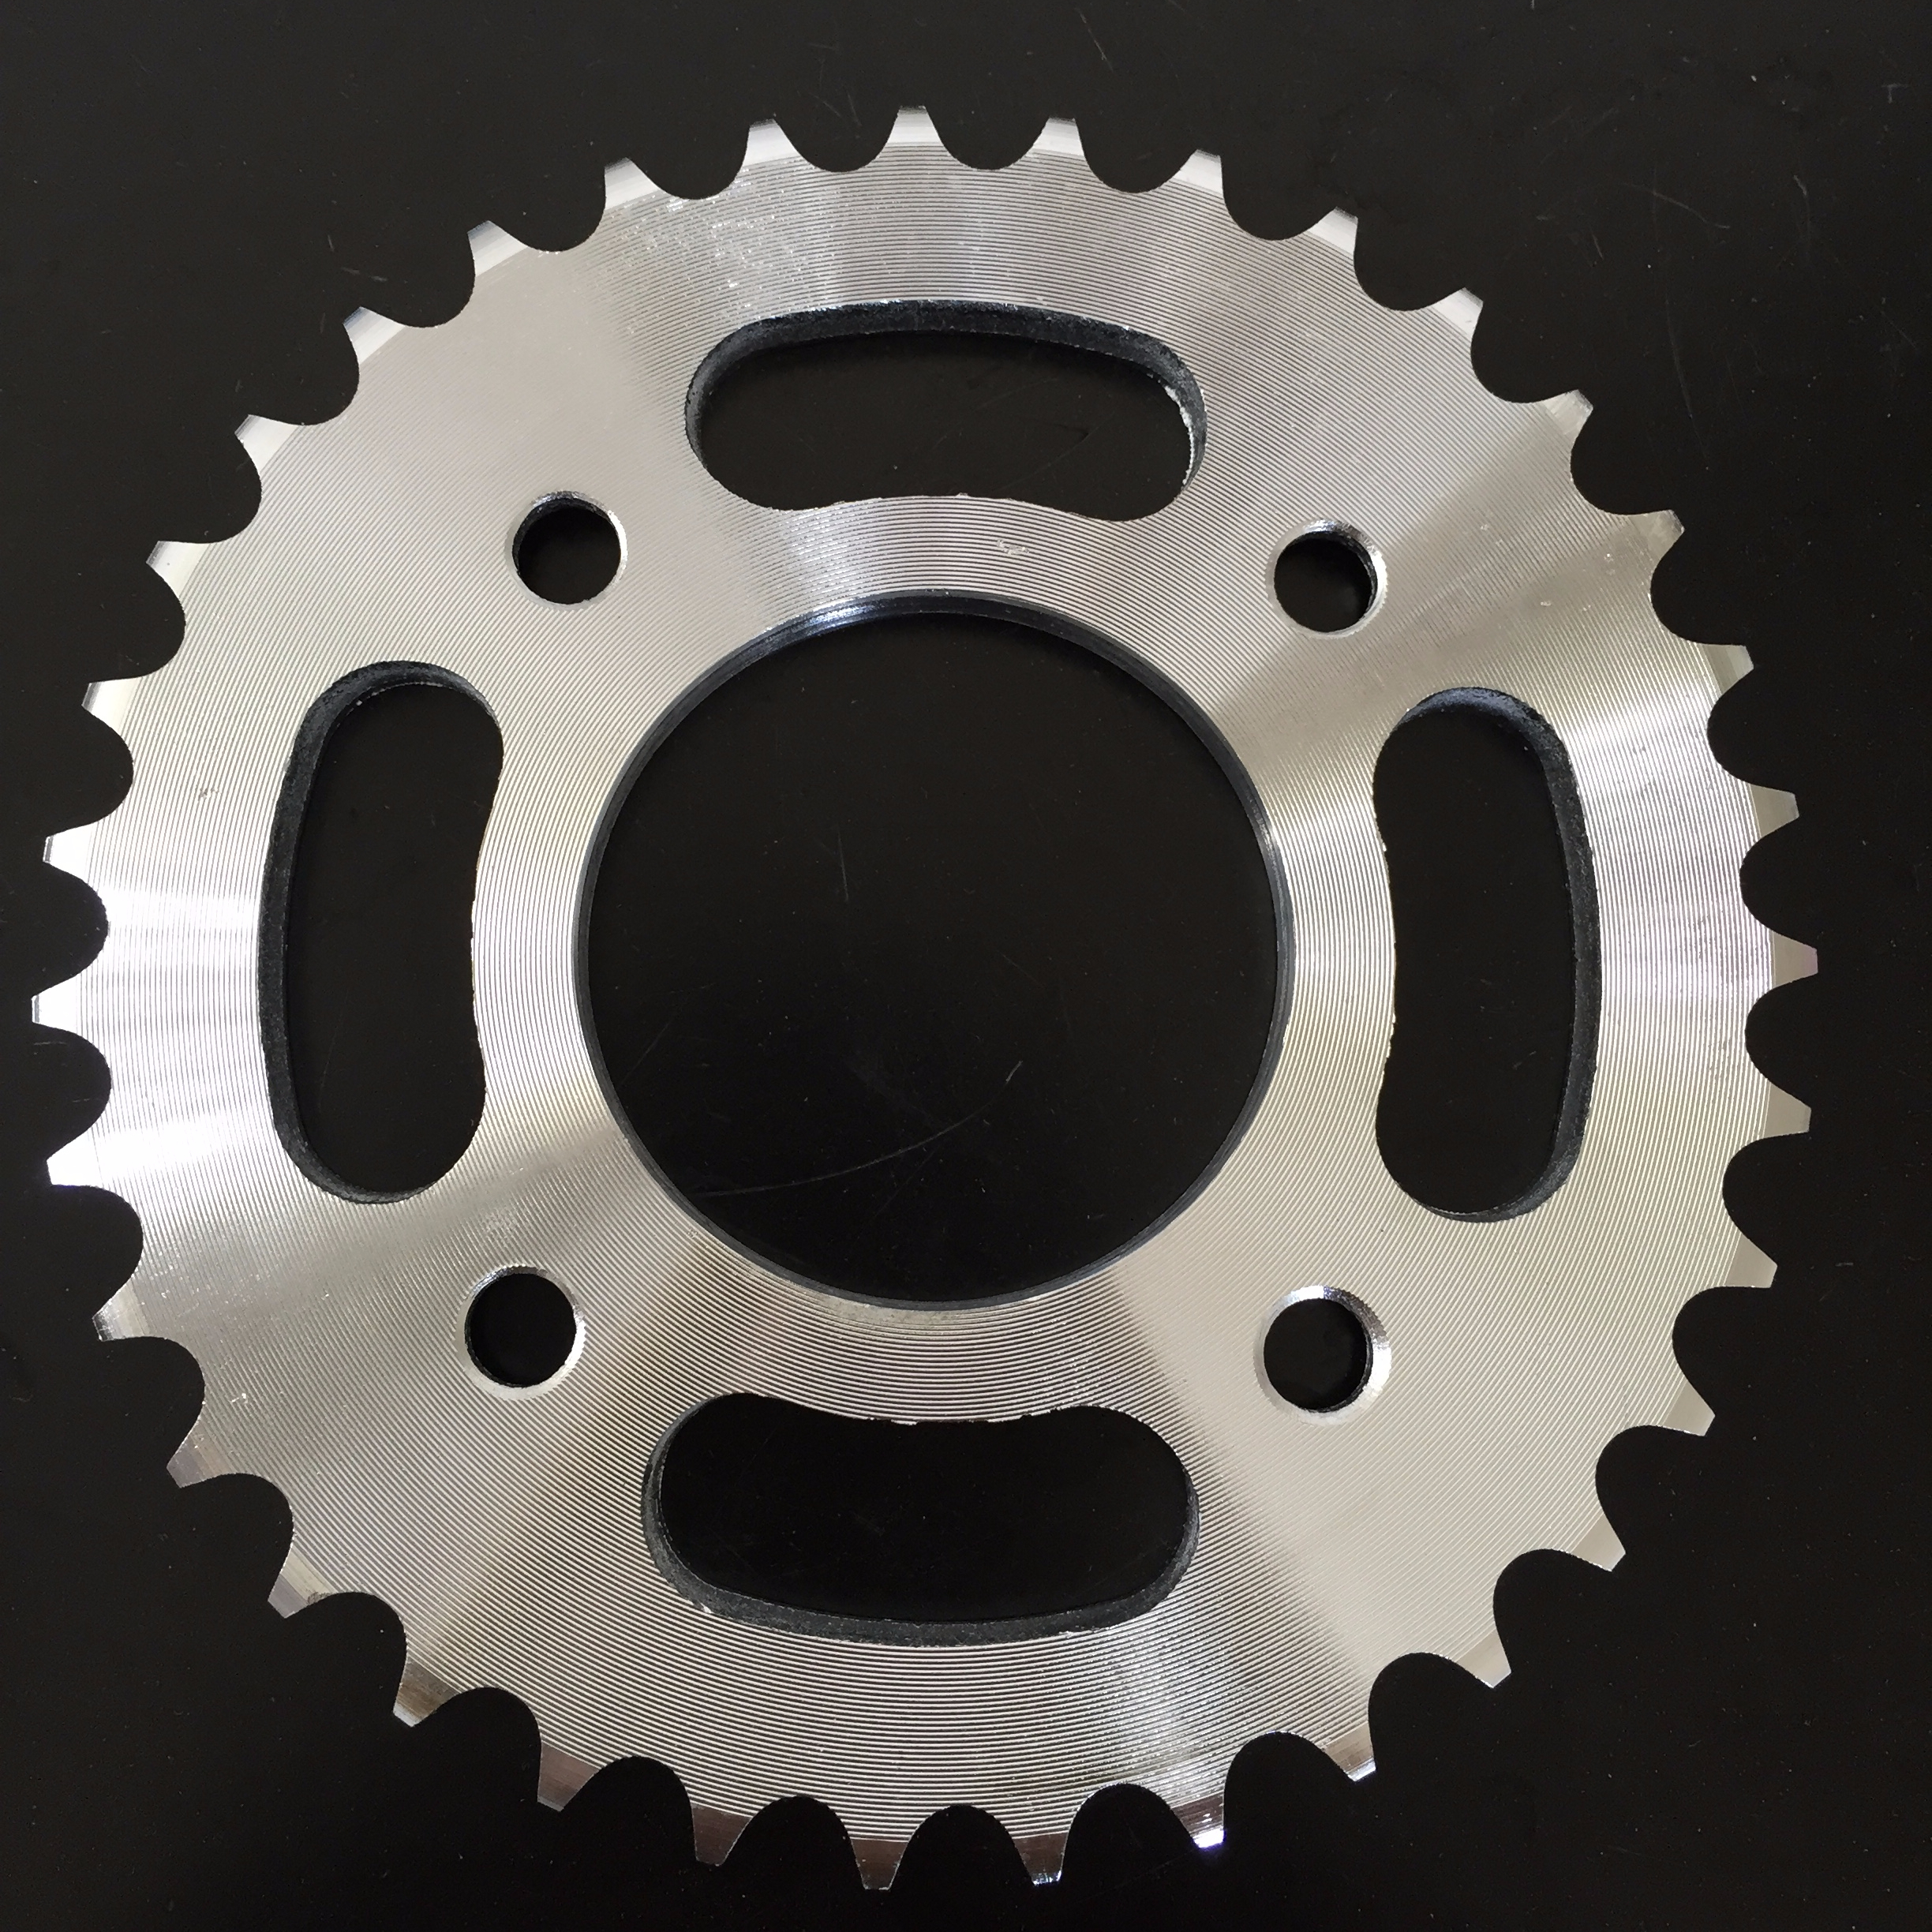 CG125 TITAN 99 <strong>1045</strong> <strong>steel</strong> CNC line galvanized color 43T/14T 428H-116L motorcycle chain and sprocket kits